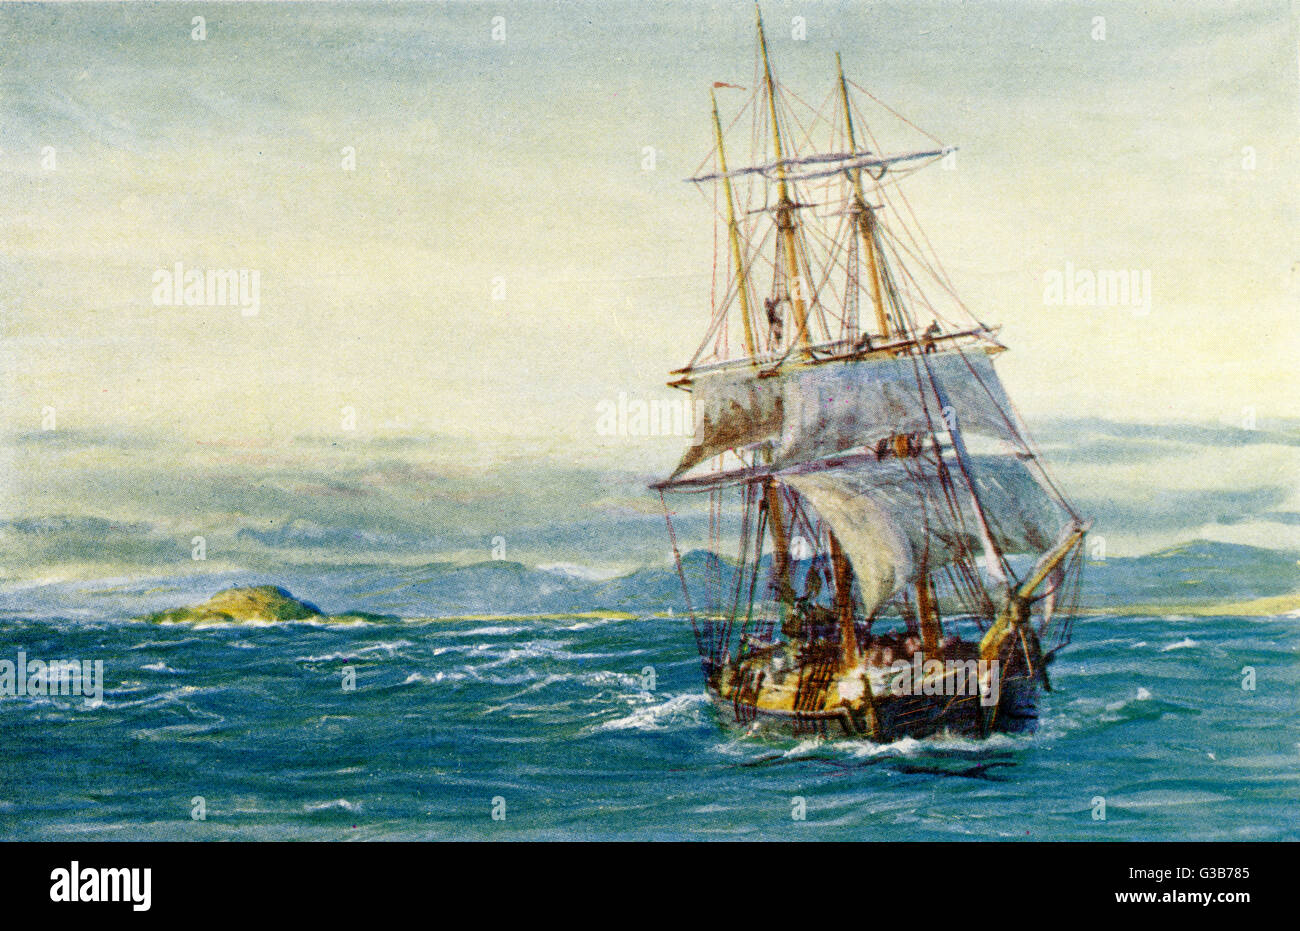 Stavanger:  timber barque off the coast       Date: 1909 - Stock Image